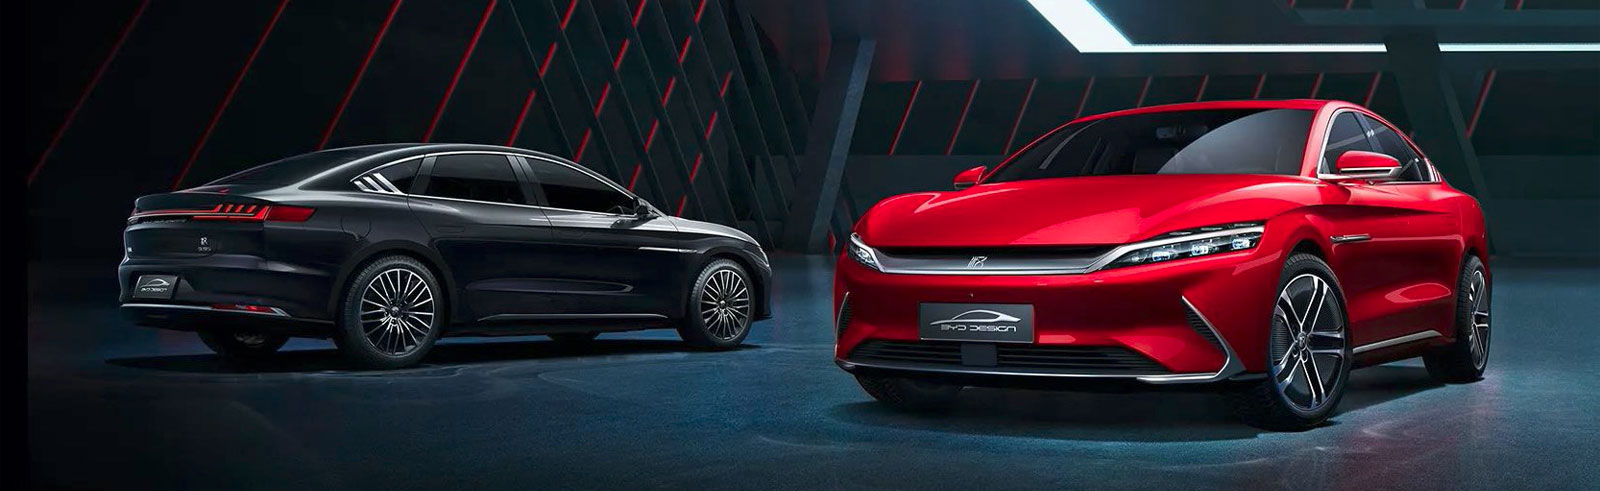 BYD Han EV will be revealed in Europe